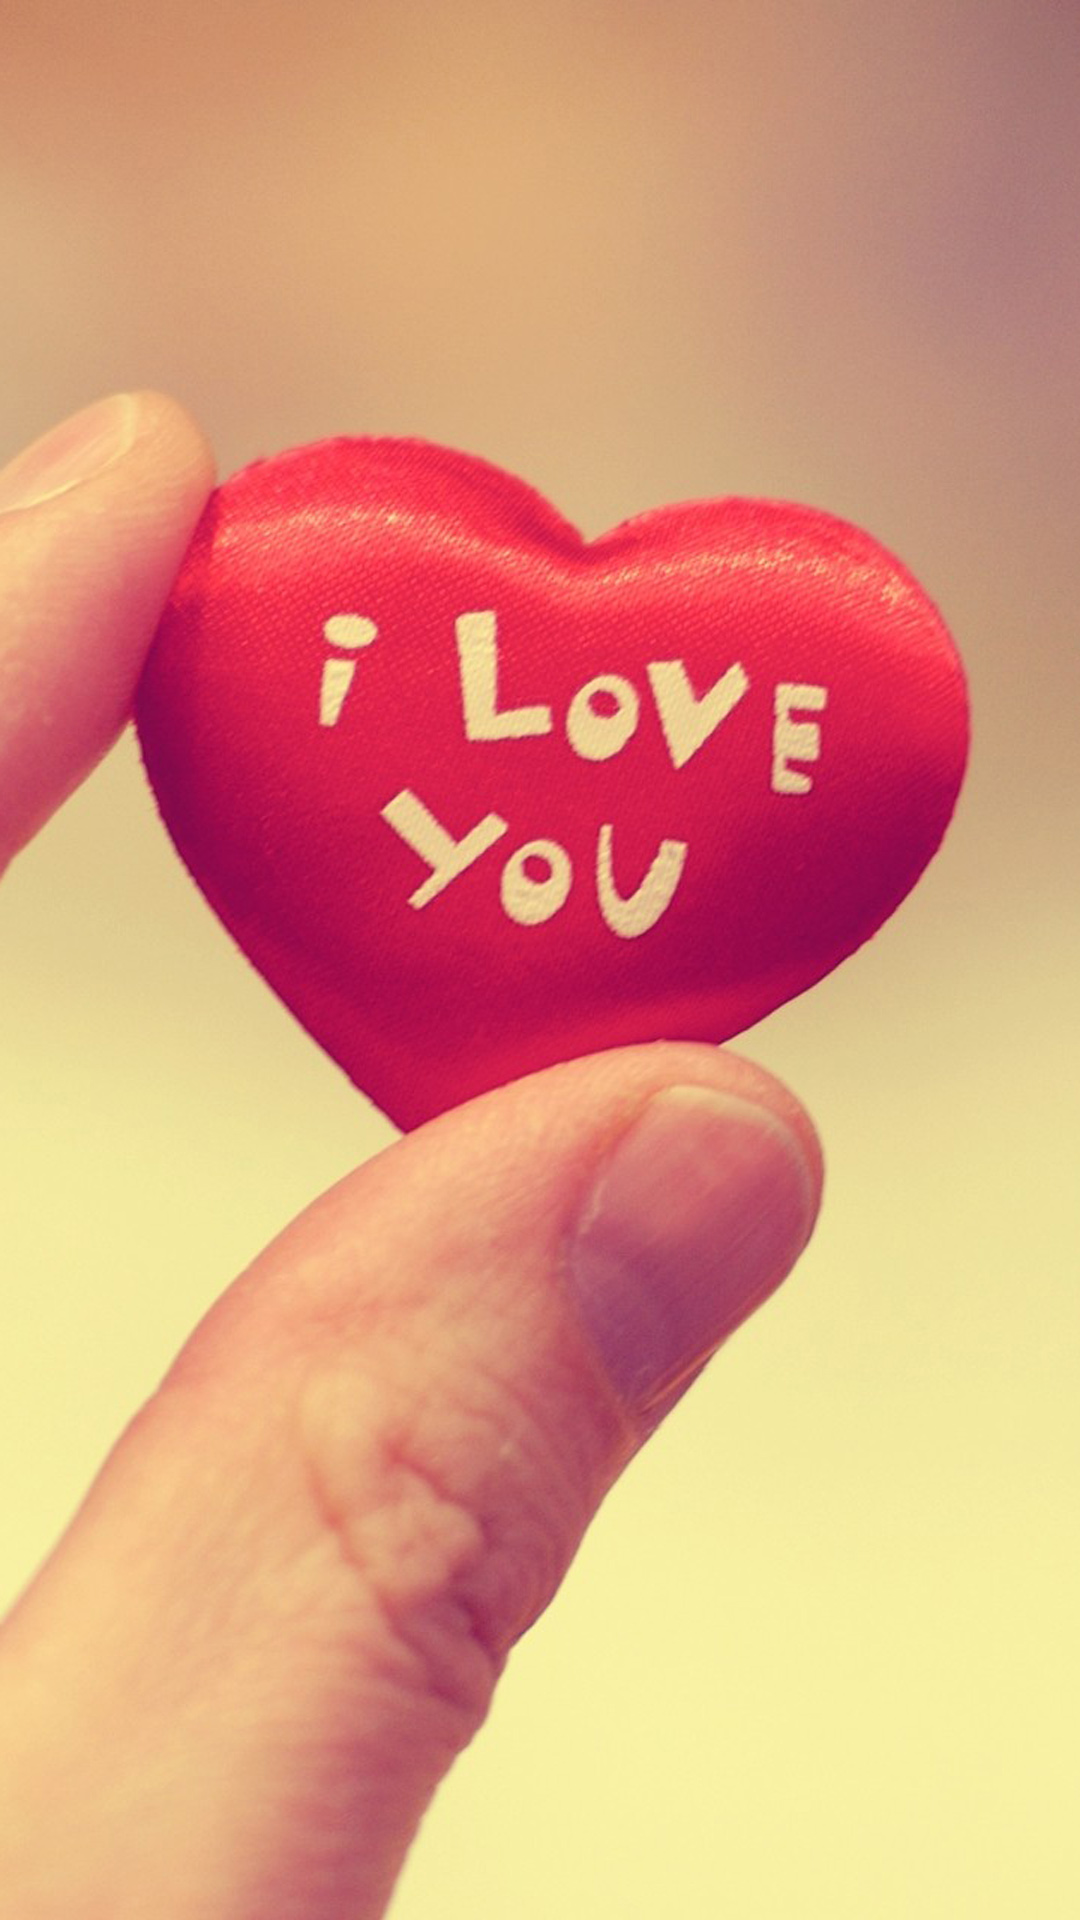 Free Download Pin Love You 1080x1920 For Your Desktop Mobile